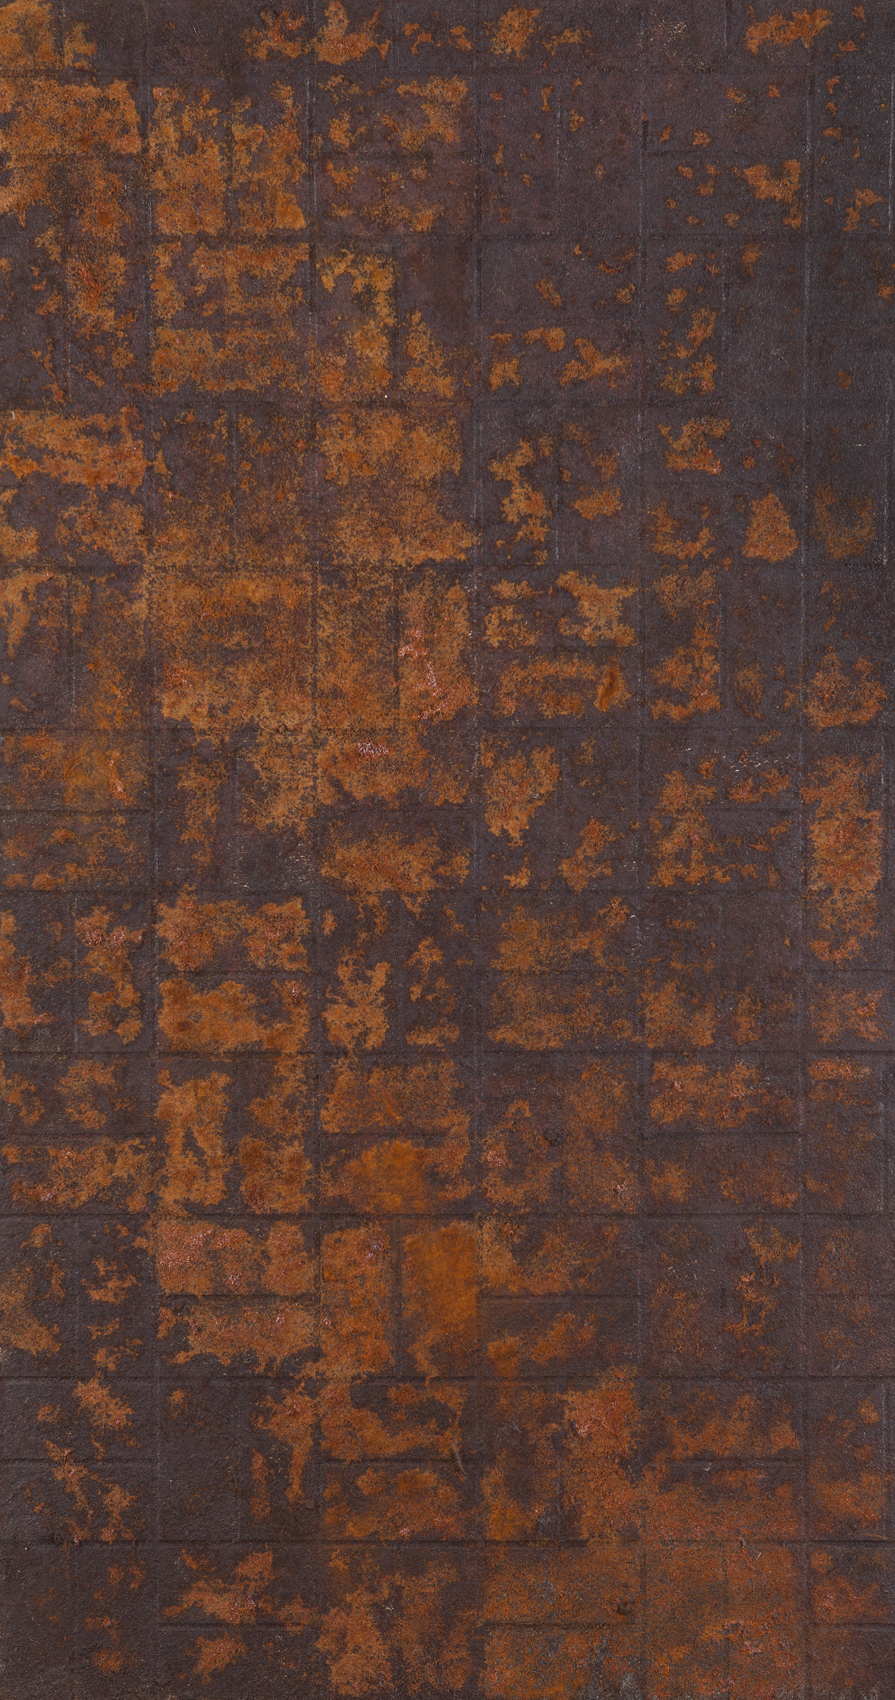 Untitled, 2016, Steel wool and rust on plywood, 150x80 cm (3).jpg